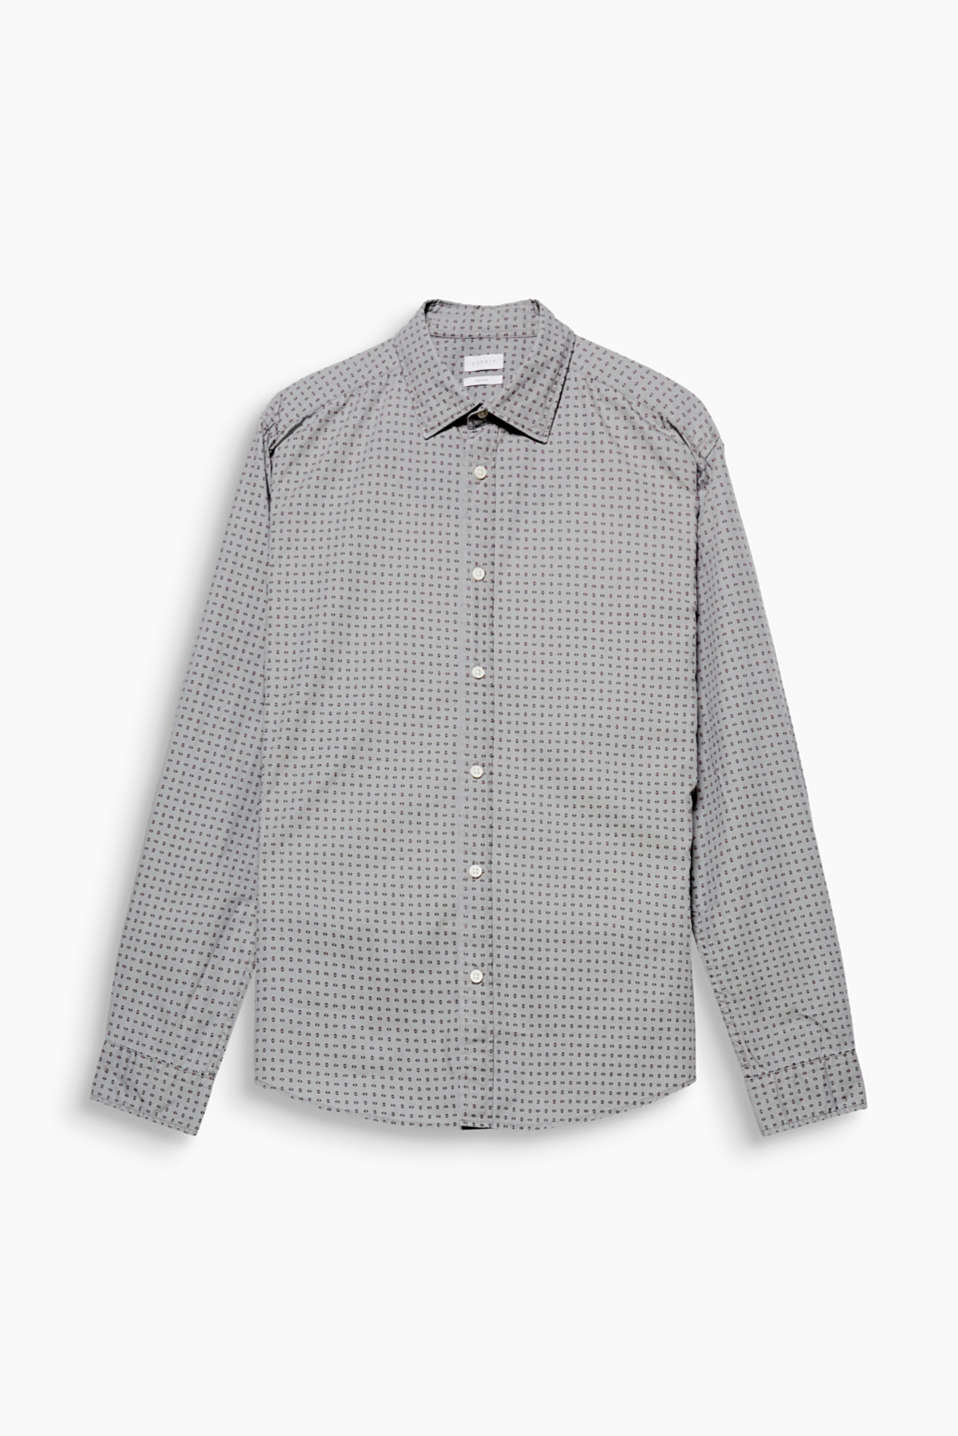 This shirt in smooth cotton fabric boasts an exciting look thanks to the geometric minimalist print.